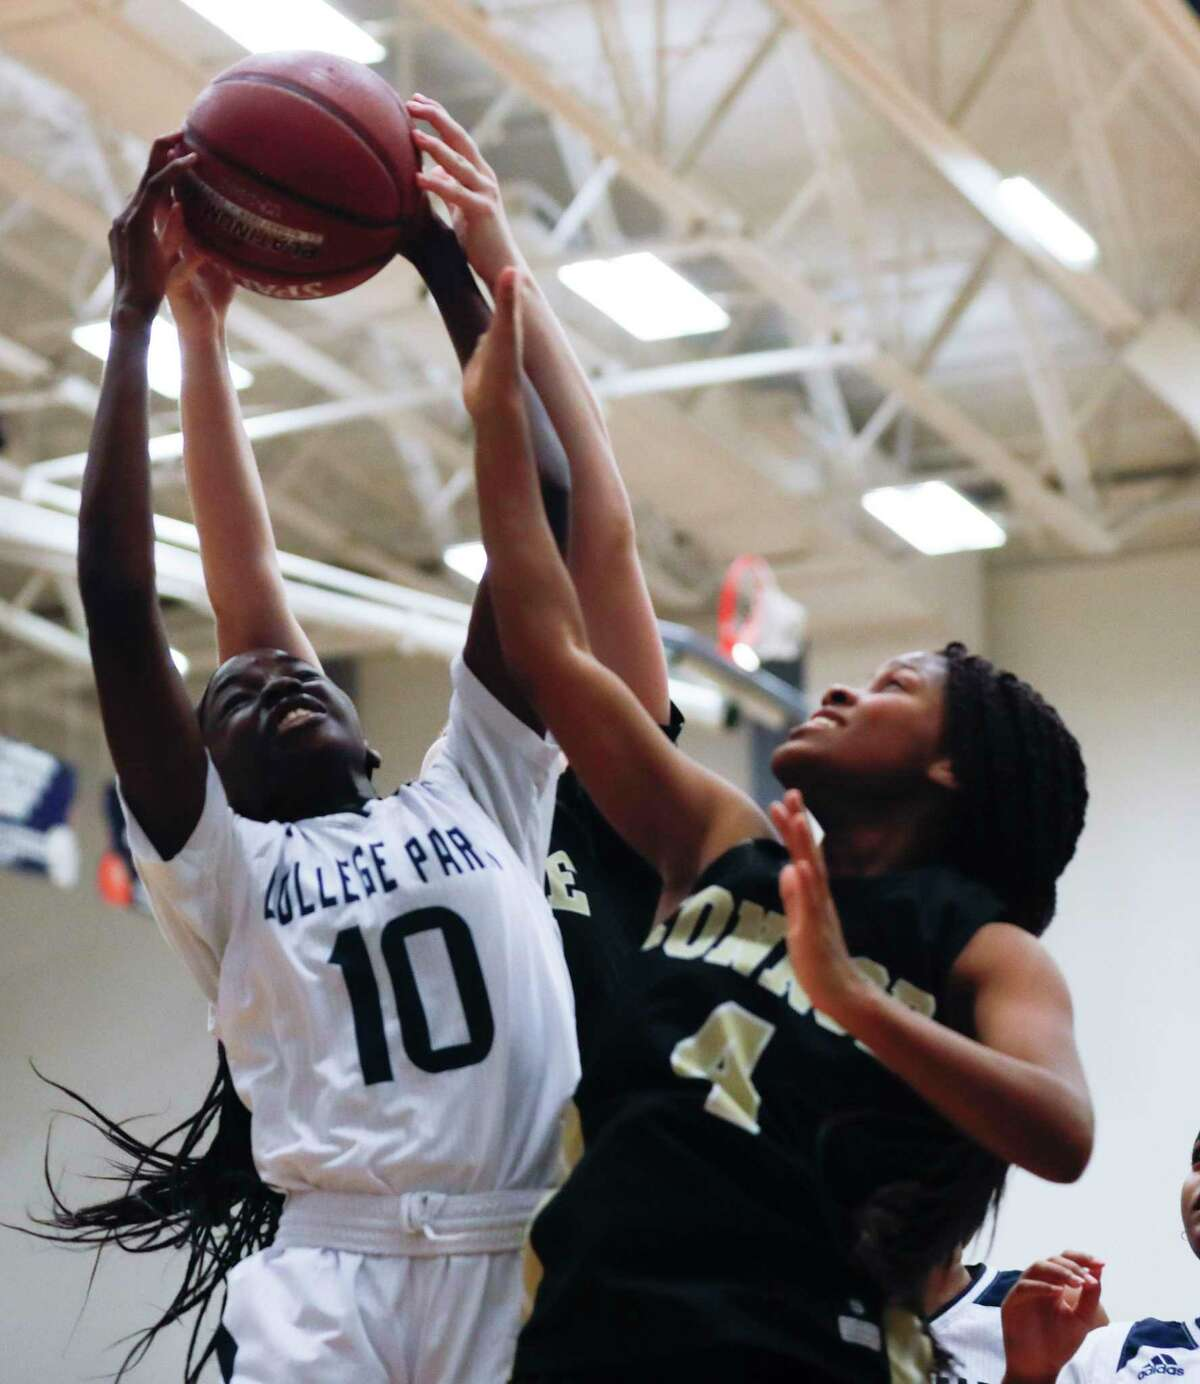 College Park power forward Ali Diop (10) was the District 15-6A Newcomer of the Year for the 2019-20 season.